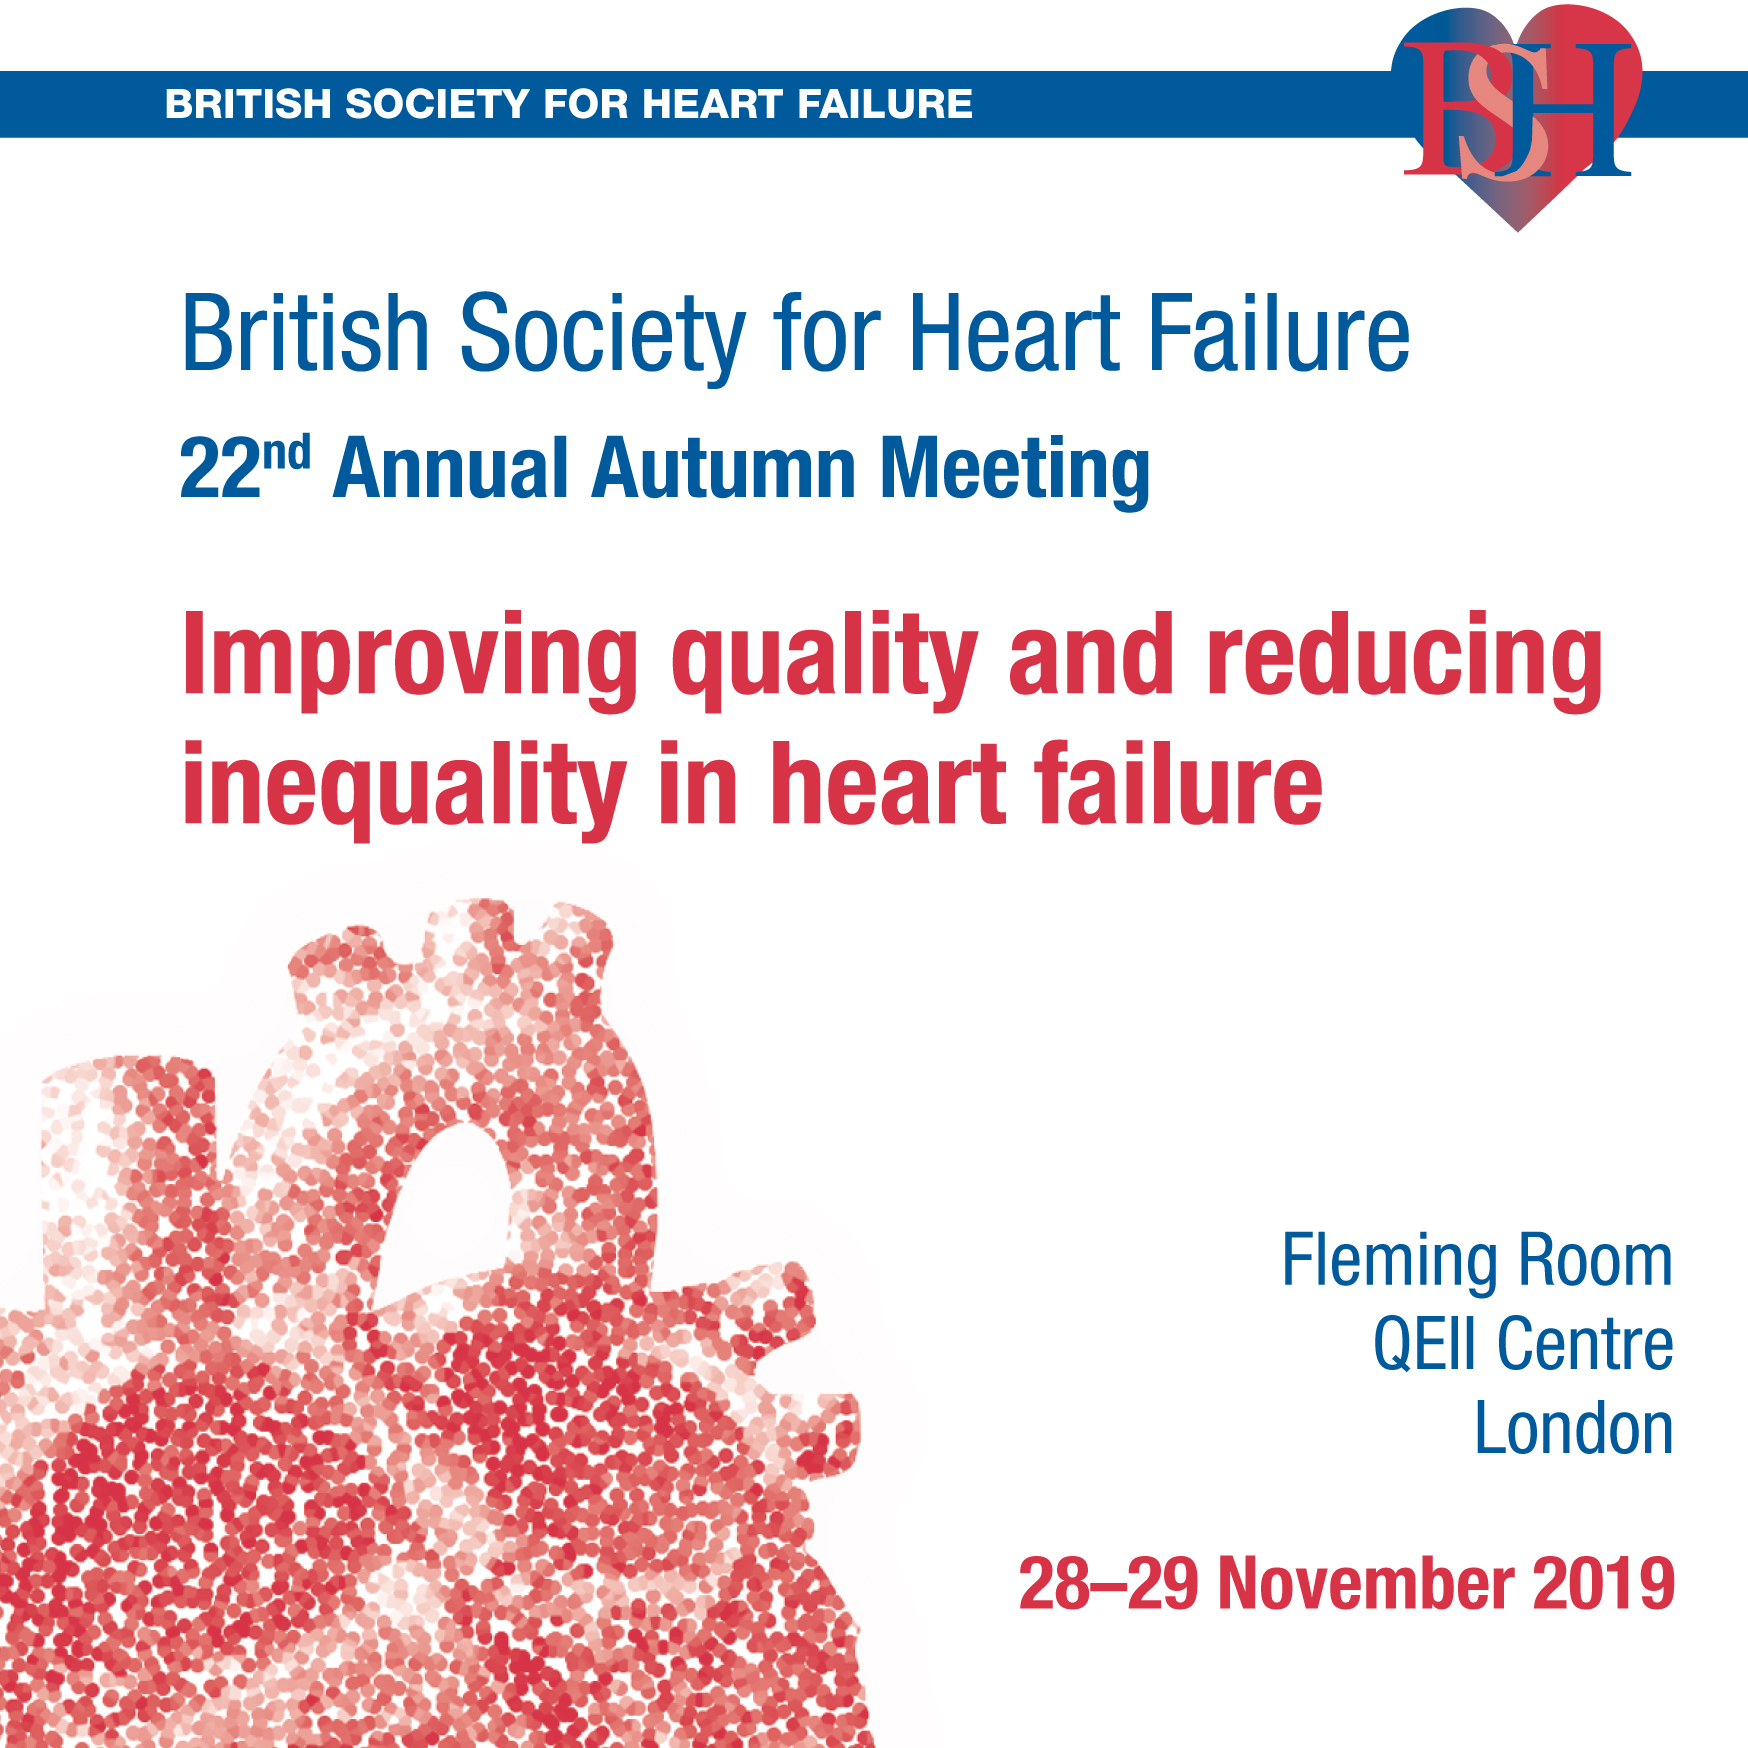 BSH Autumn Meeting